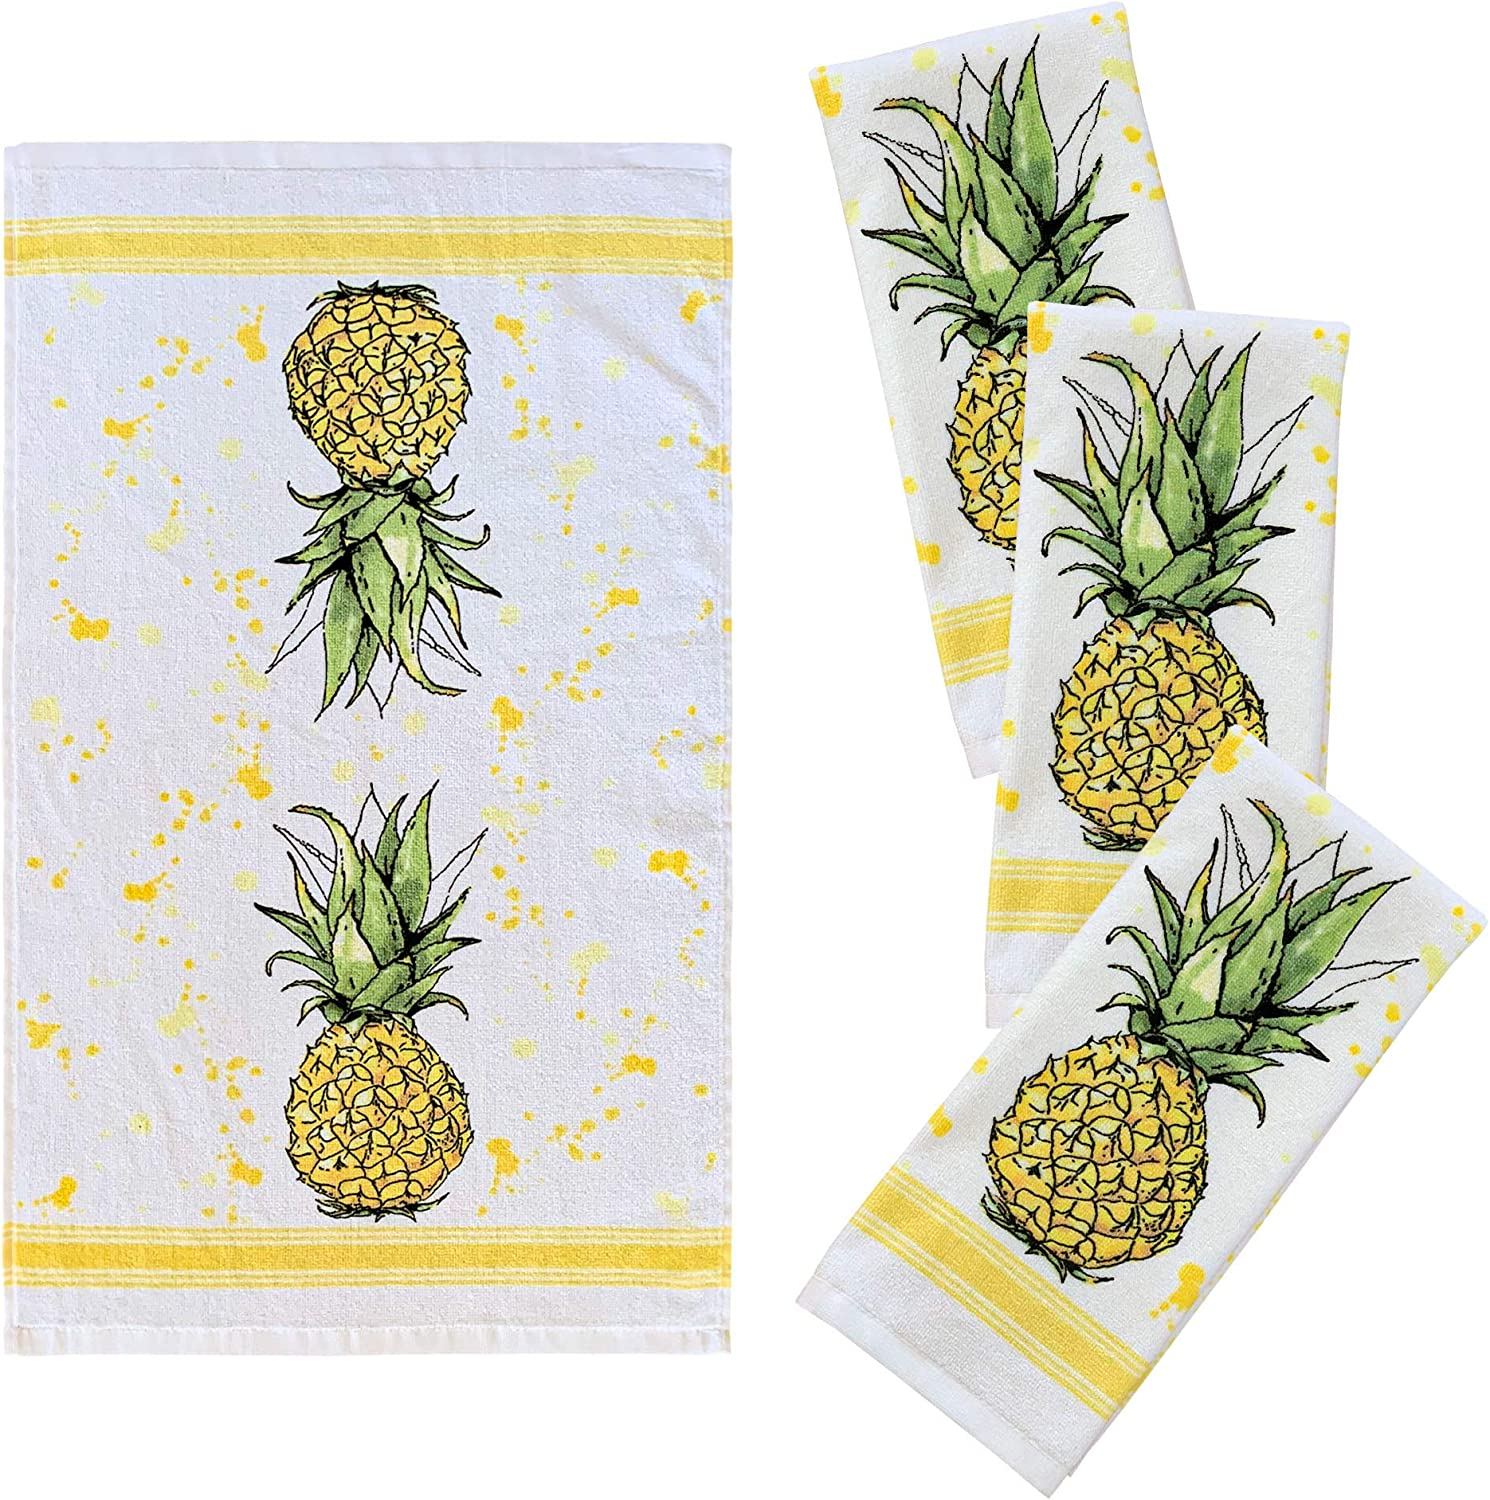 """Franco Kitchen Designers Set of 4 Decorative Soft and Absorbent Cotton Dish Towels, 15"""" x 25"""", Sweet Pineapple"""